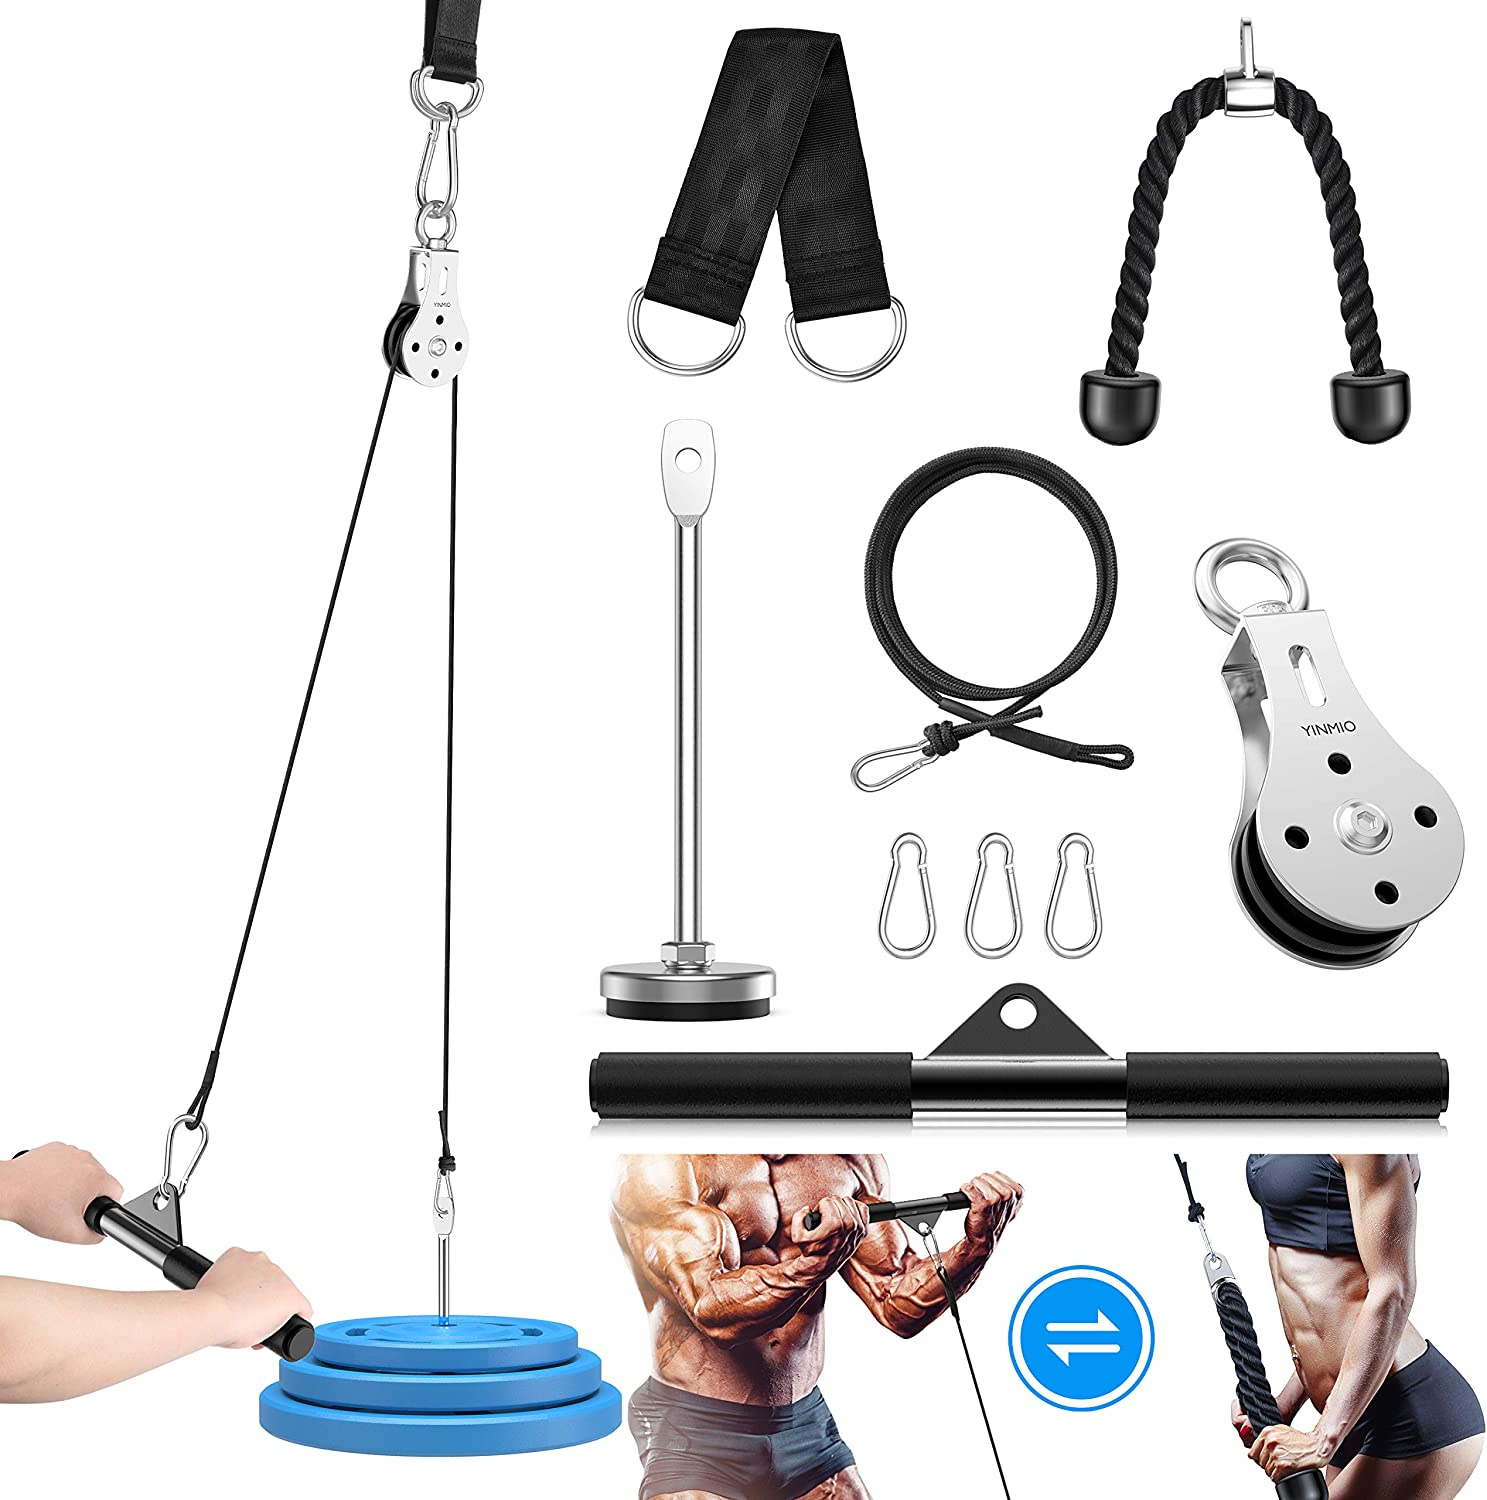 YINMIO Cable Pulley, Fitness LAT and Lift Pulley System, 2Meter DIY Pulley Cable Attachment, Cable Pulley System Gym, for Triceps Pull Down, Biceps Curl, Back, Forearm, Shoulder-Home Gym Equipment